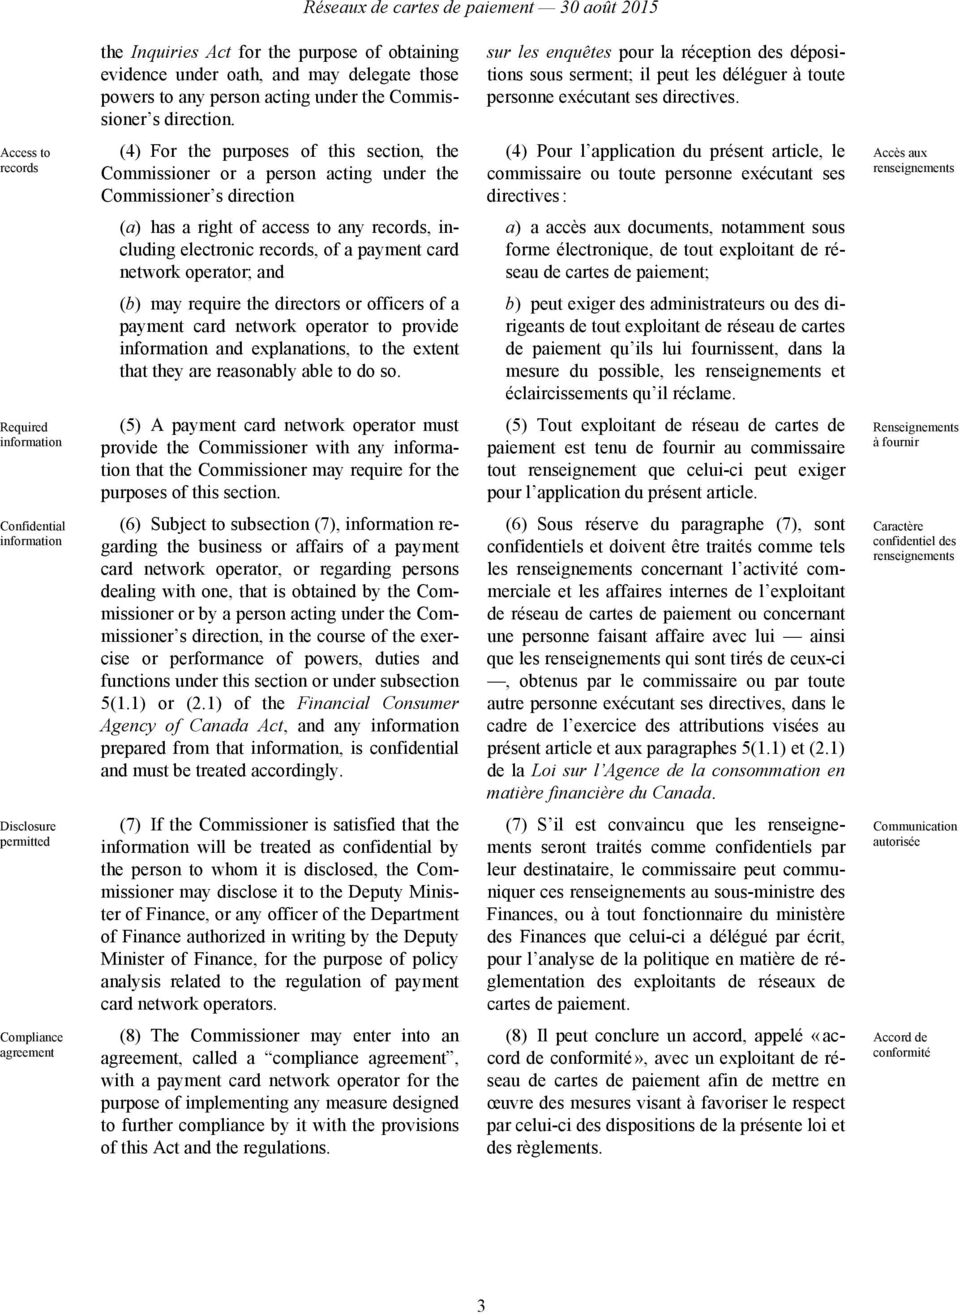 Access to records (4) For the purposes of this section, the Commissioner or a person acting under the Commissioner s direction (4) Pour l application du présent article, le commissaire ou toute